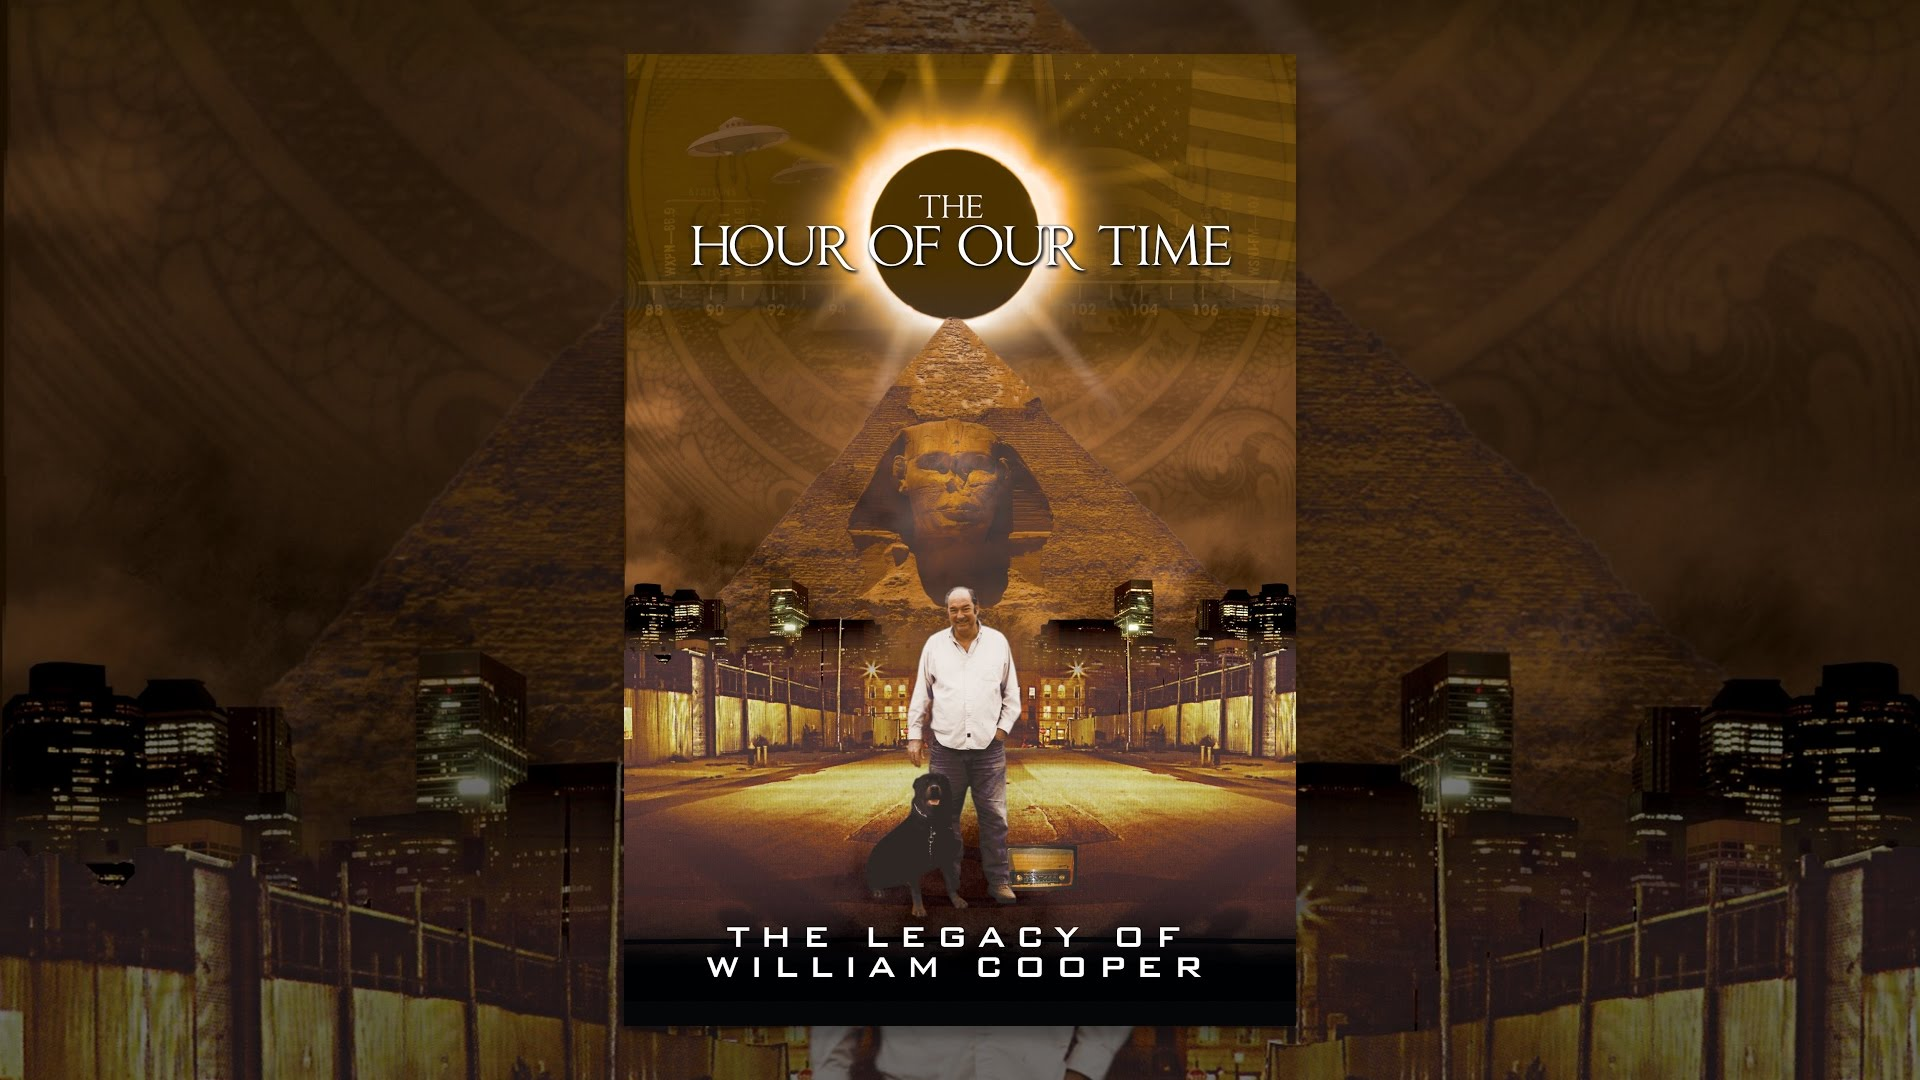 The Hour оf оur Time: The Legacy of William Cooper